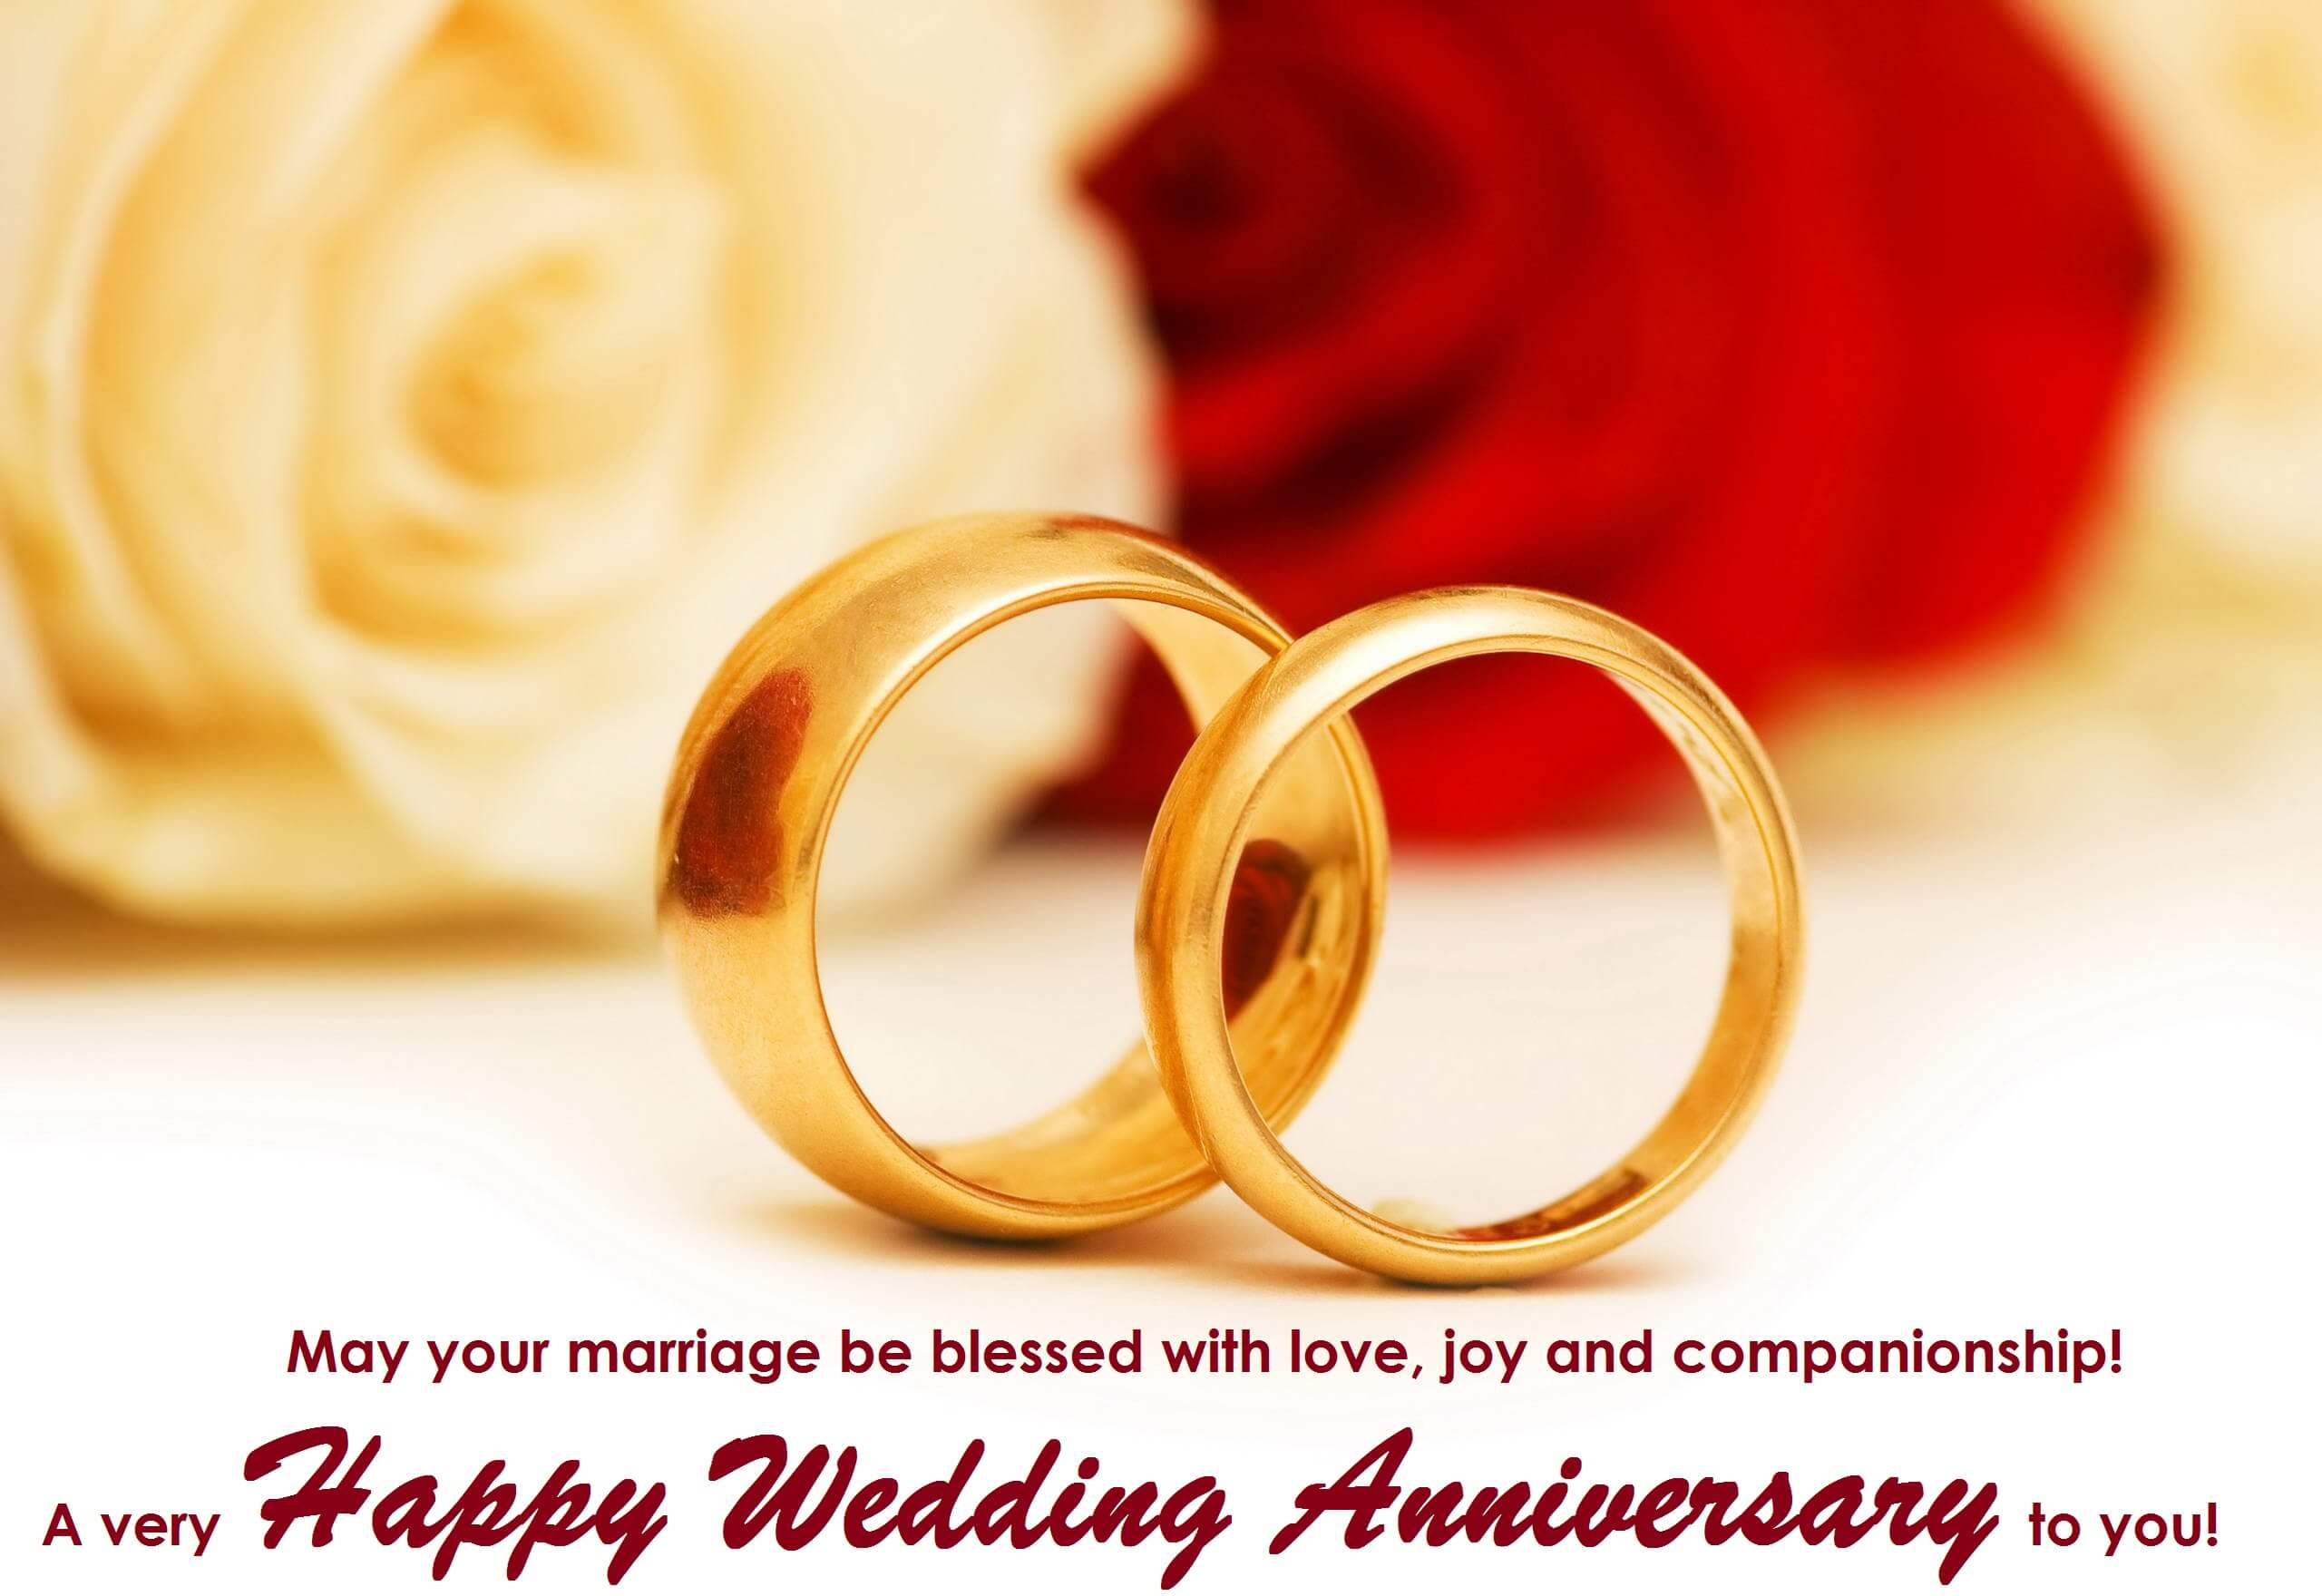 Happy Wedding Anniversary Quotes.200 Happy Anniversary Wishes Quotes Messages Fungistaaan